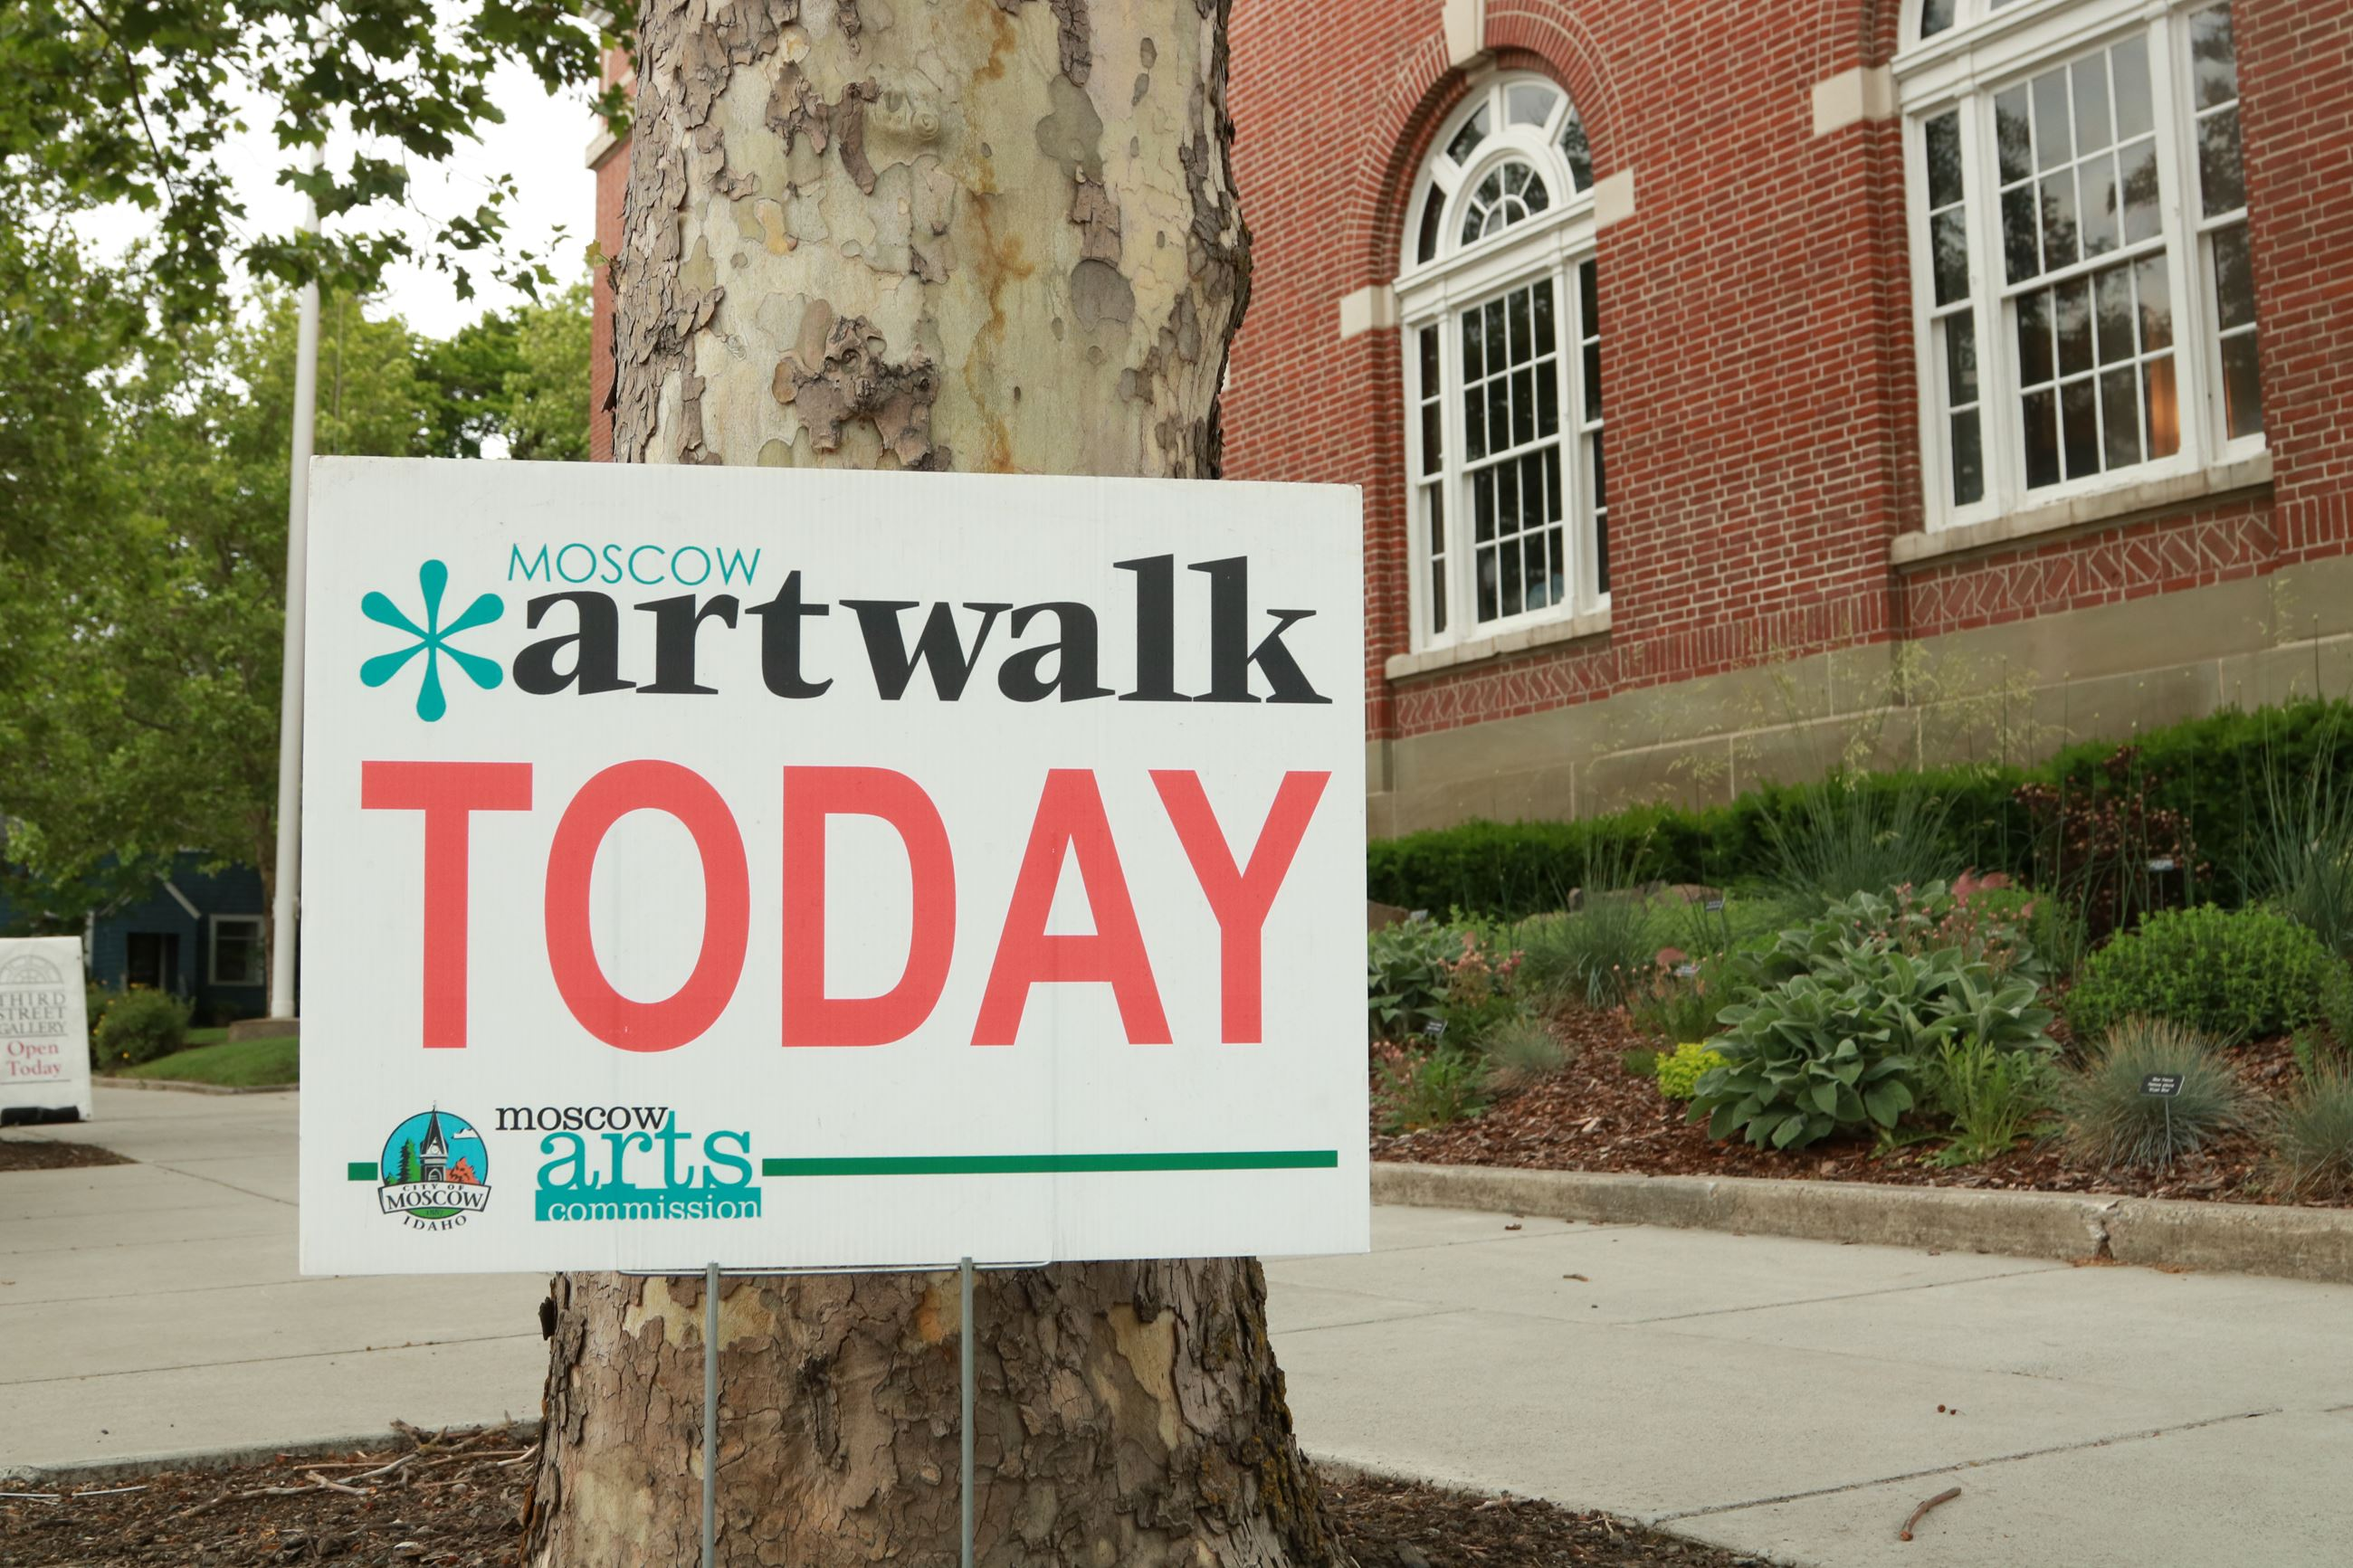 Sign depicting Artwalk TODAY